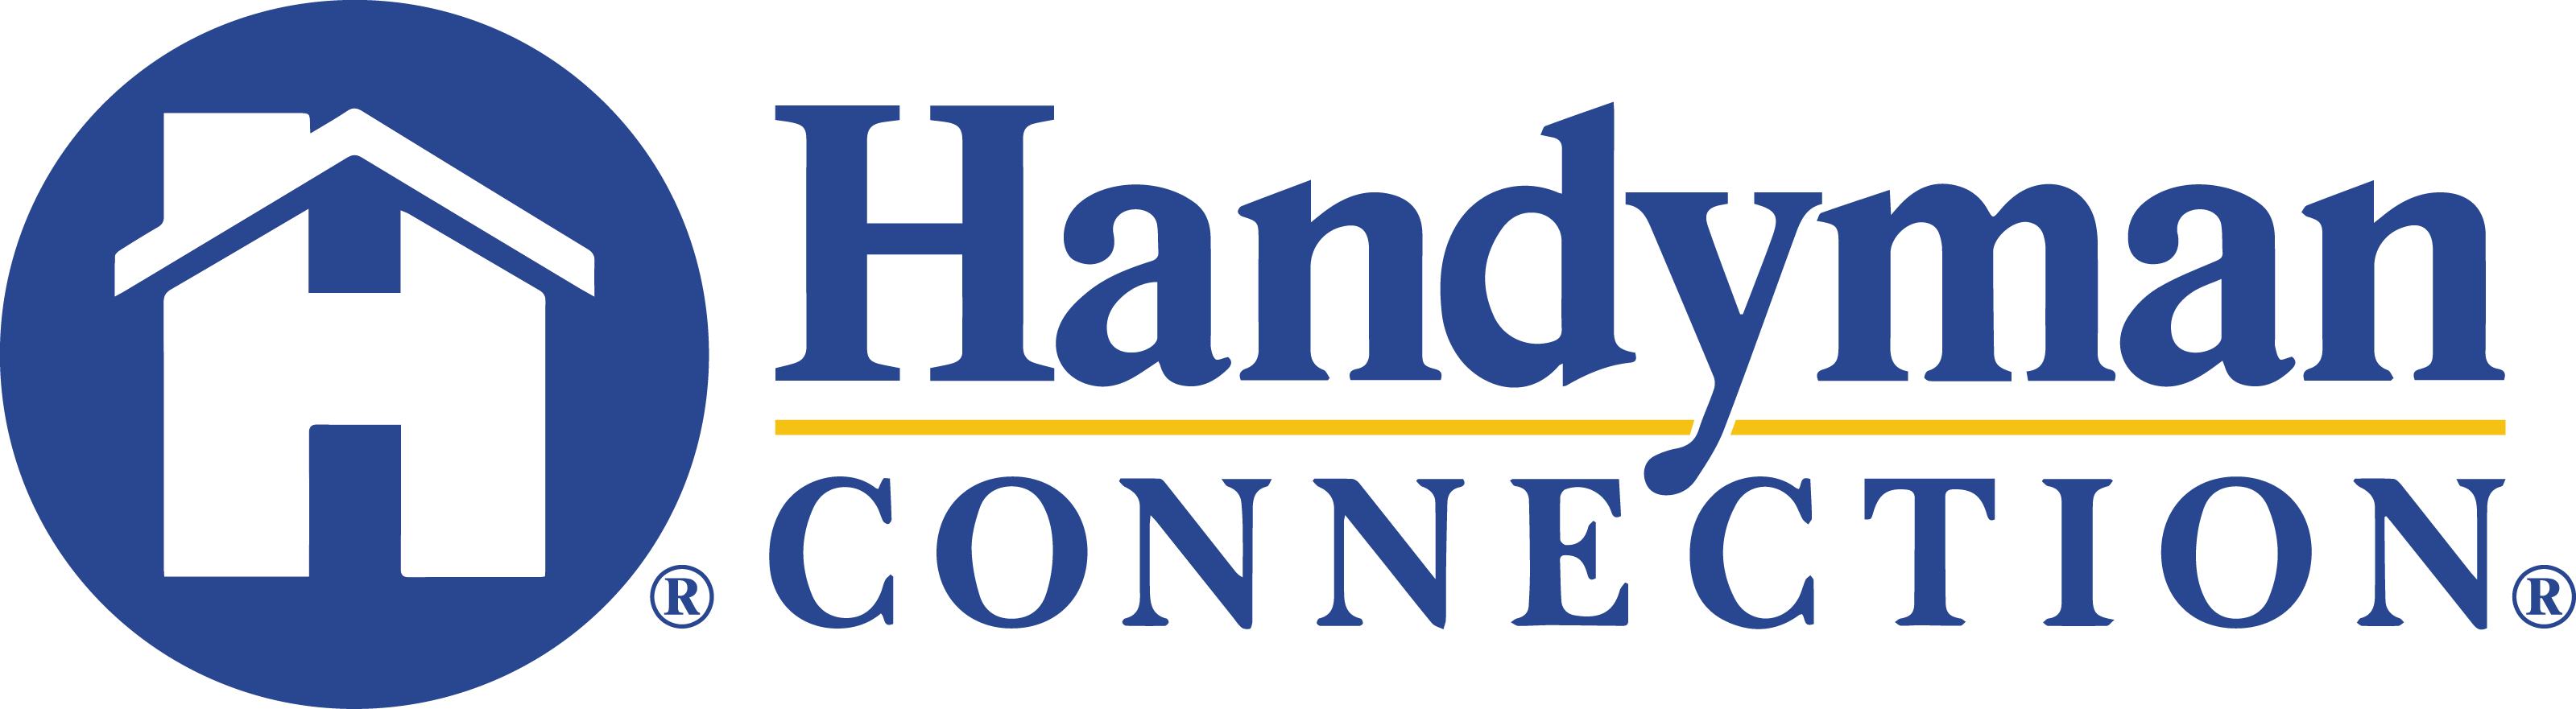 Handyman Connection of Metro Vancouver, BC